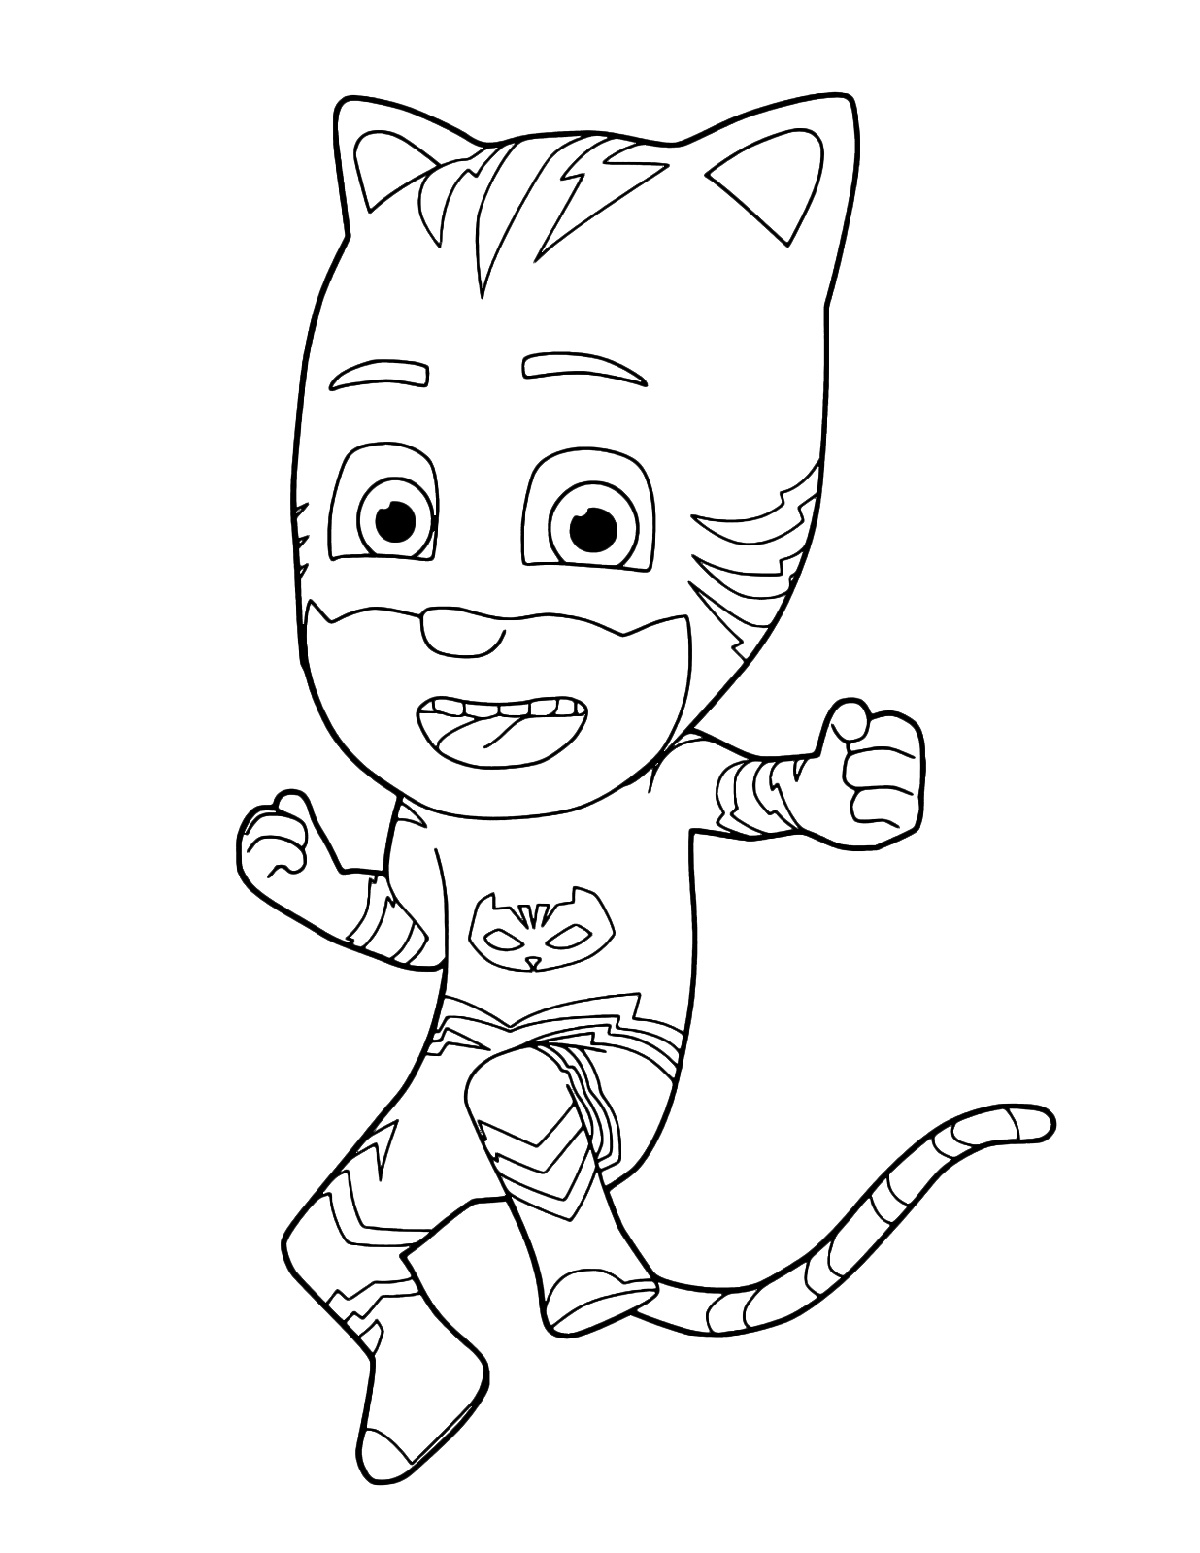 Pj Masks Coloring Printable